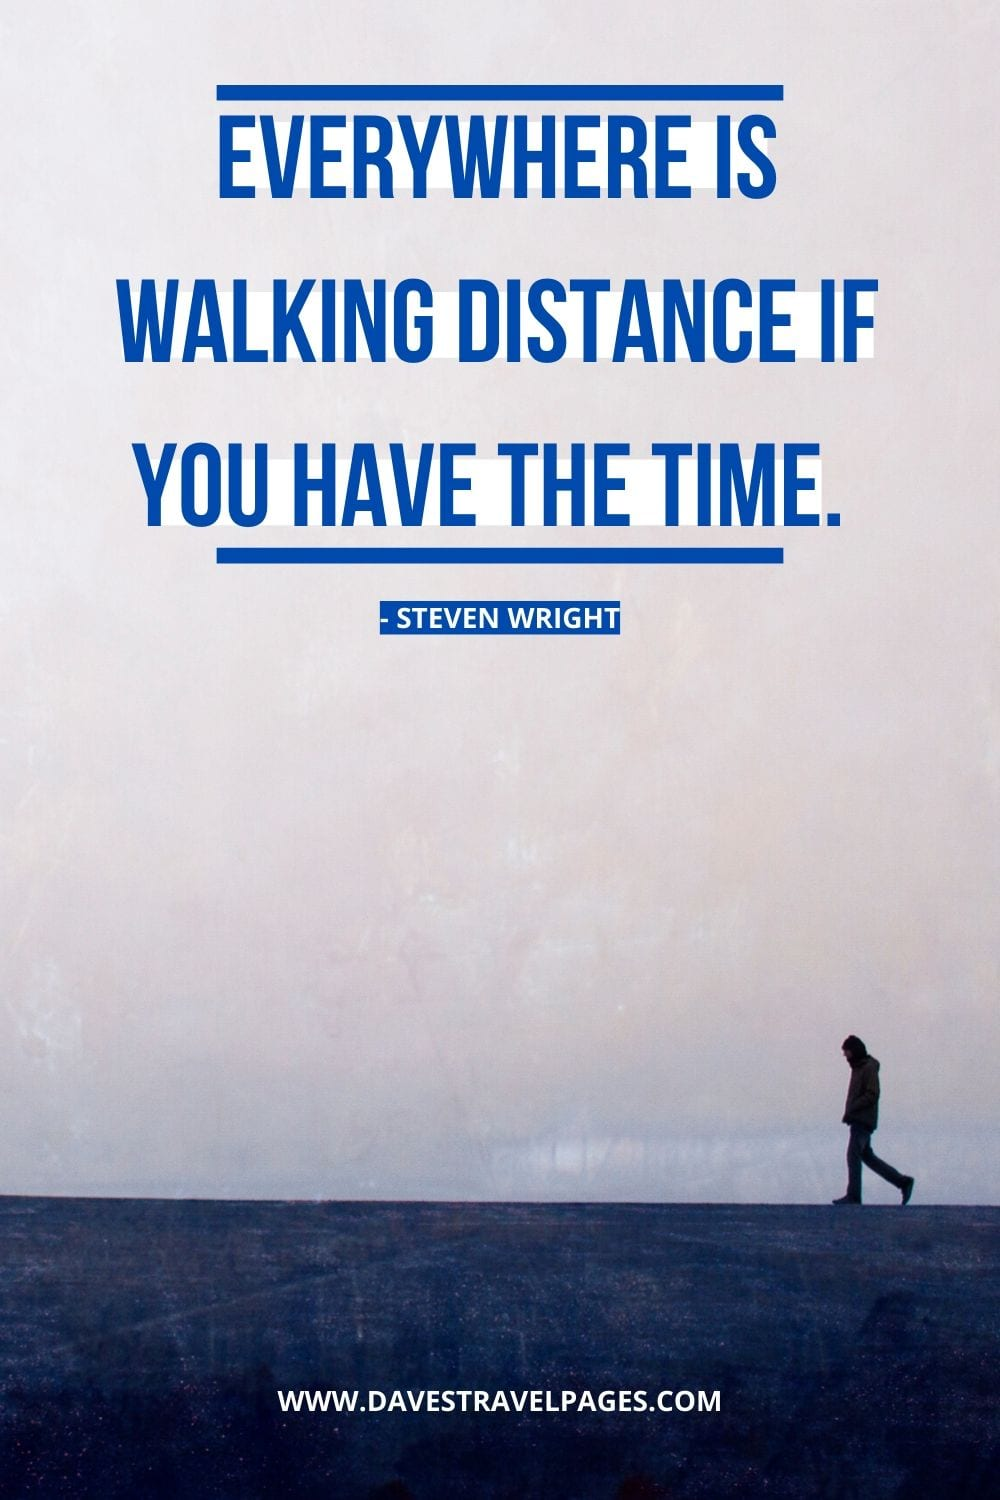 Walk with me quotes: Everywhere is walking distance if you have the time. - Steven Wright